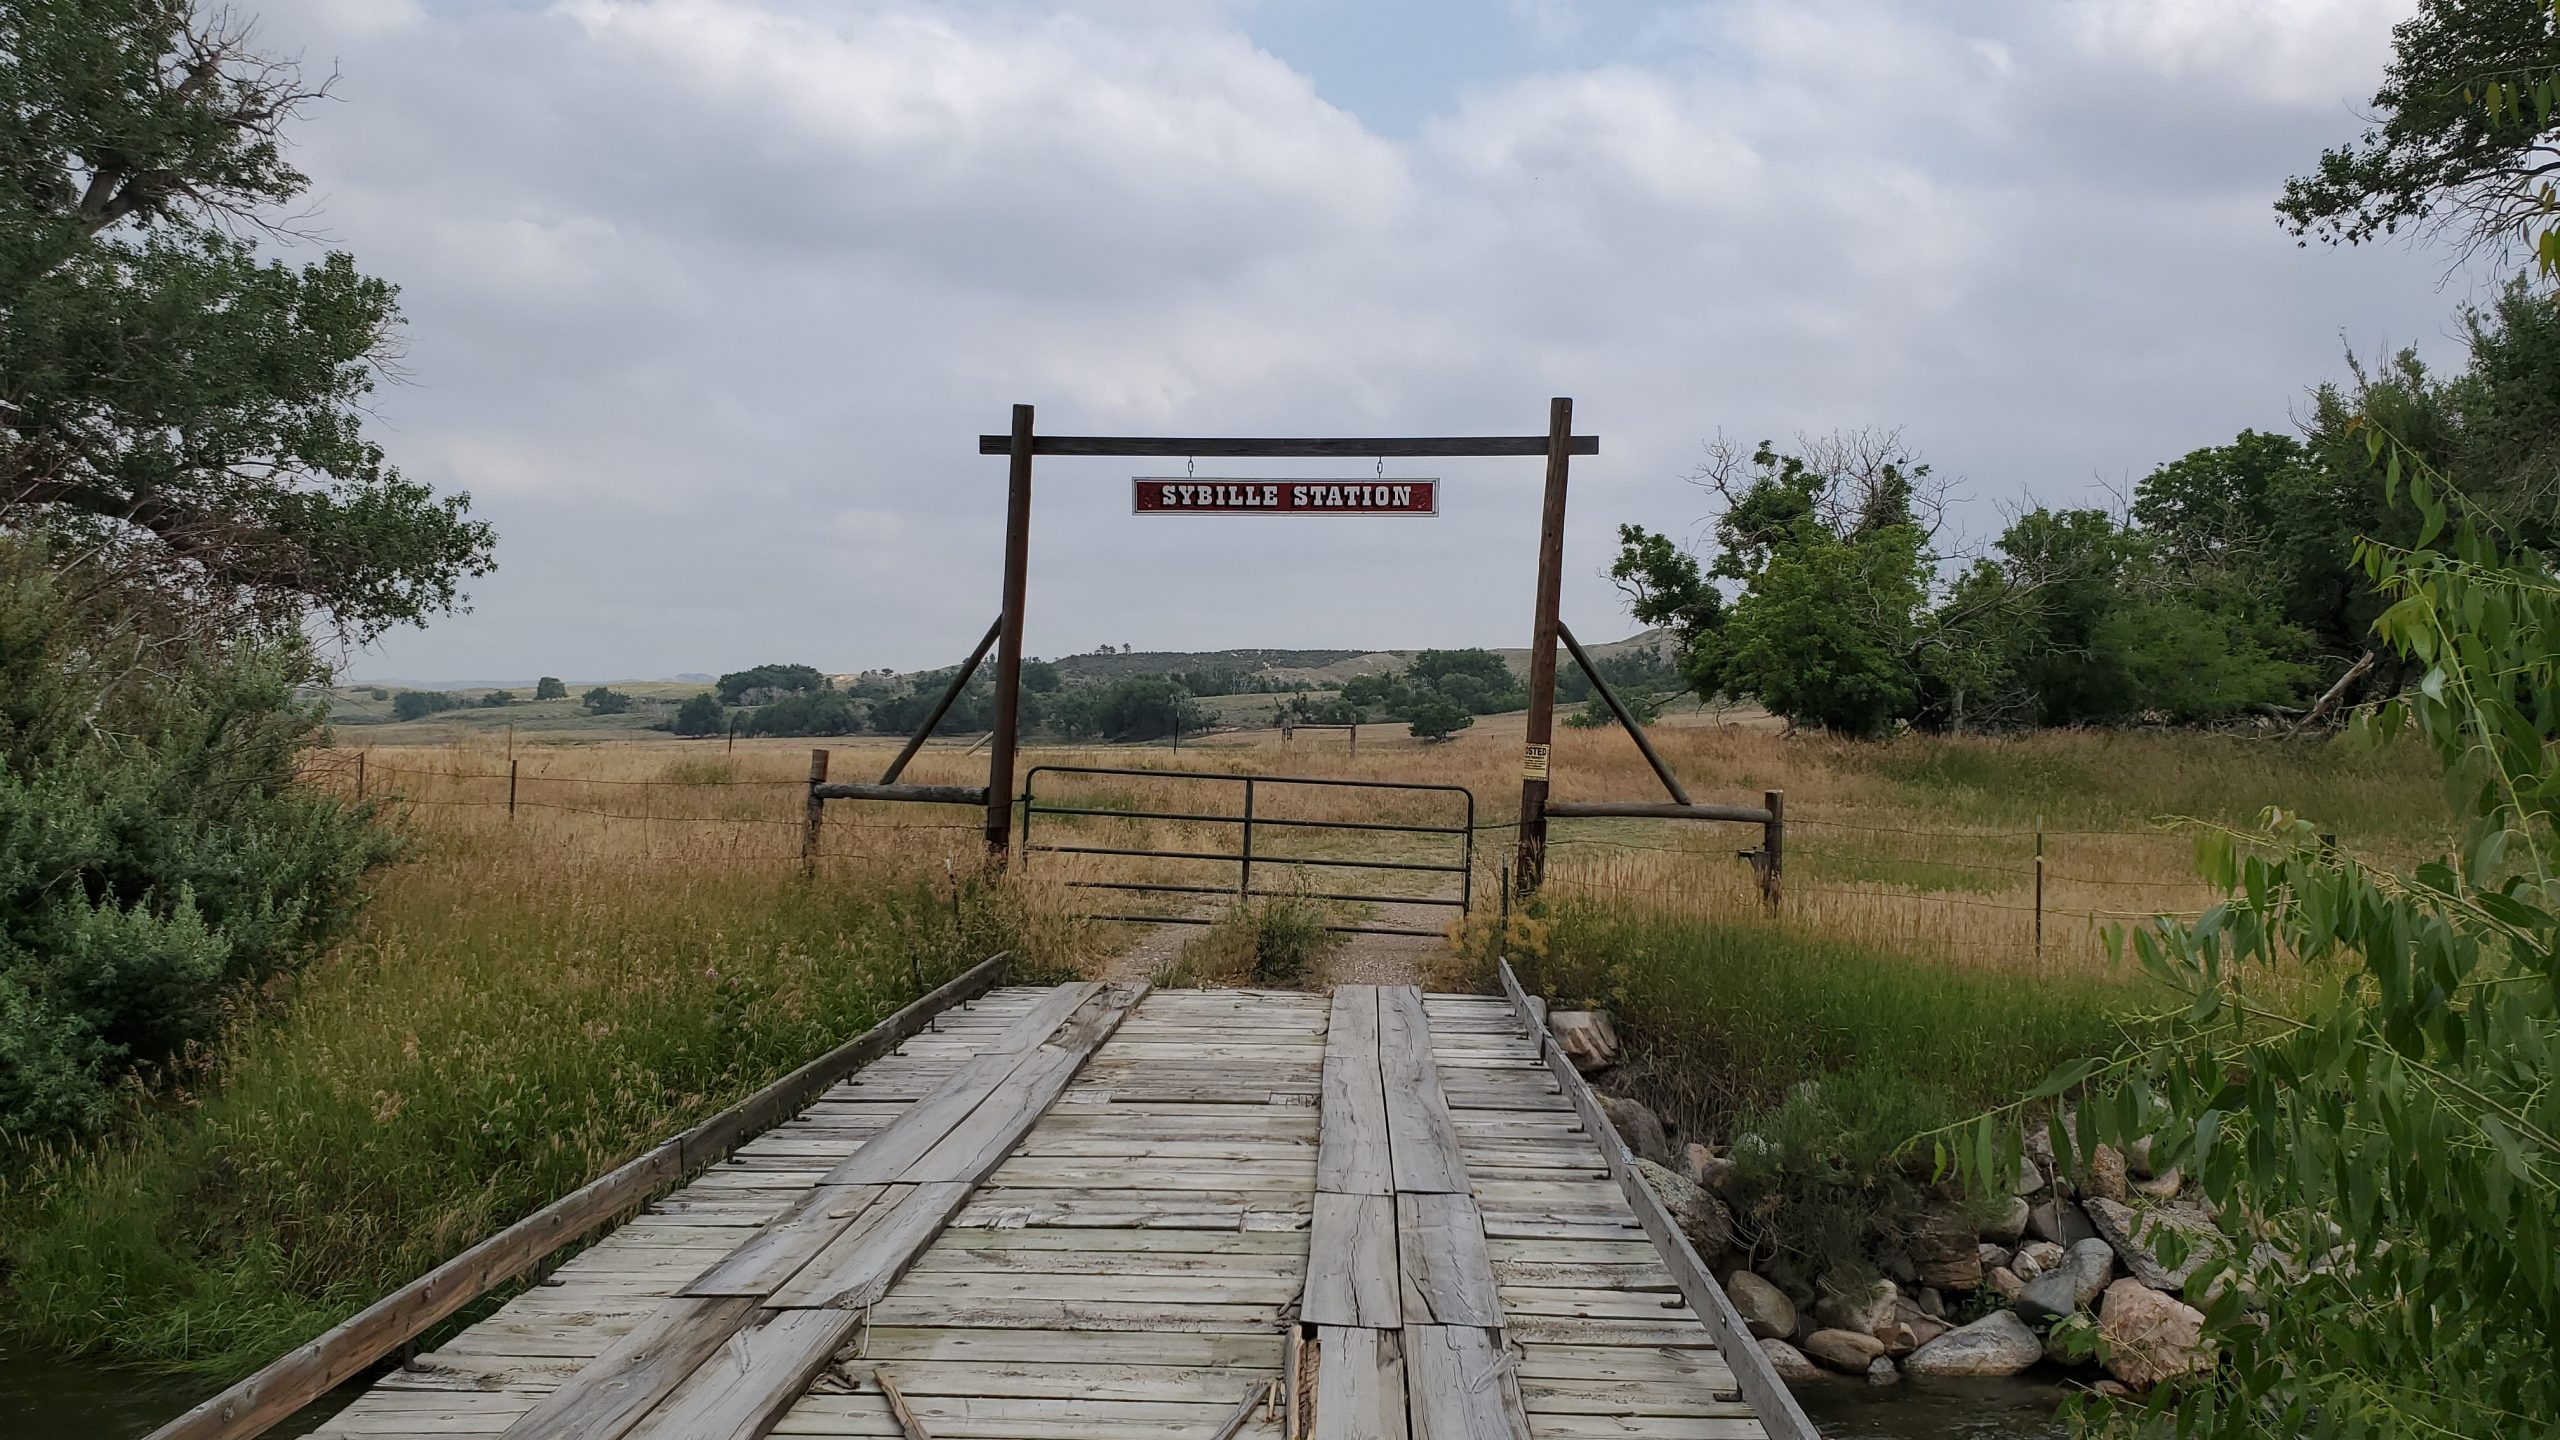 Sybille Station Ranch